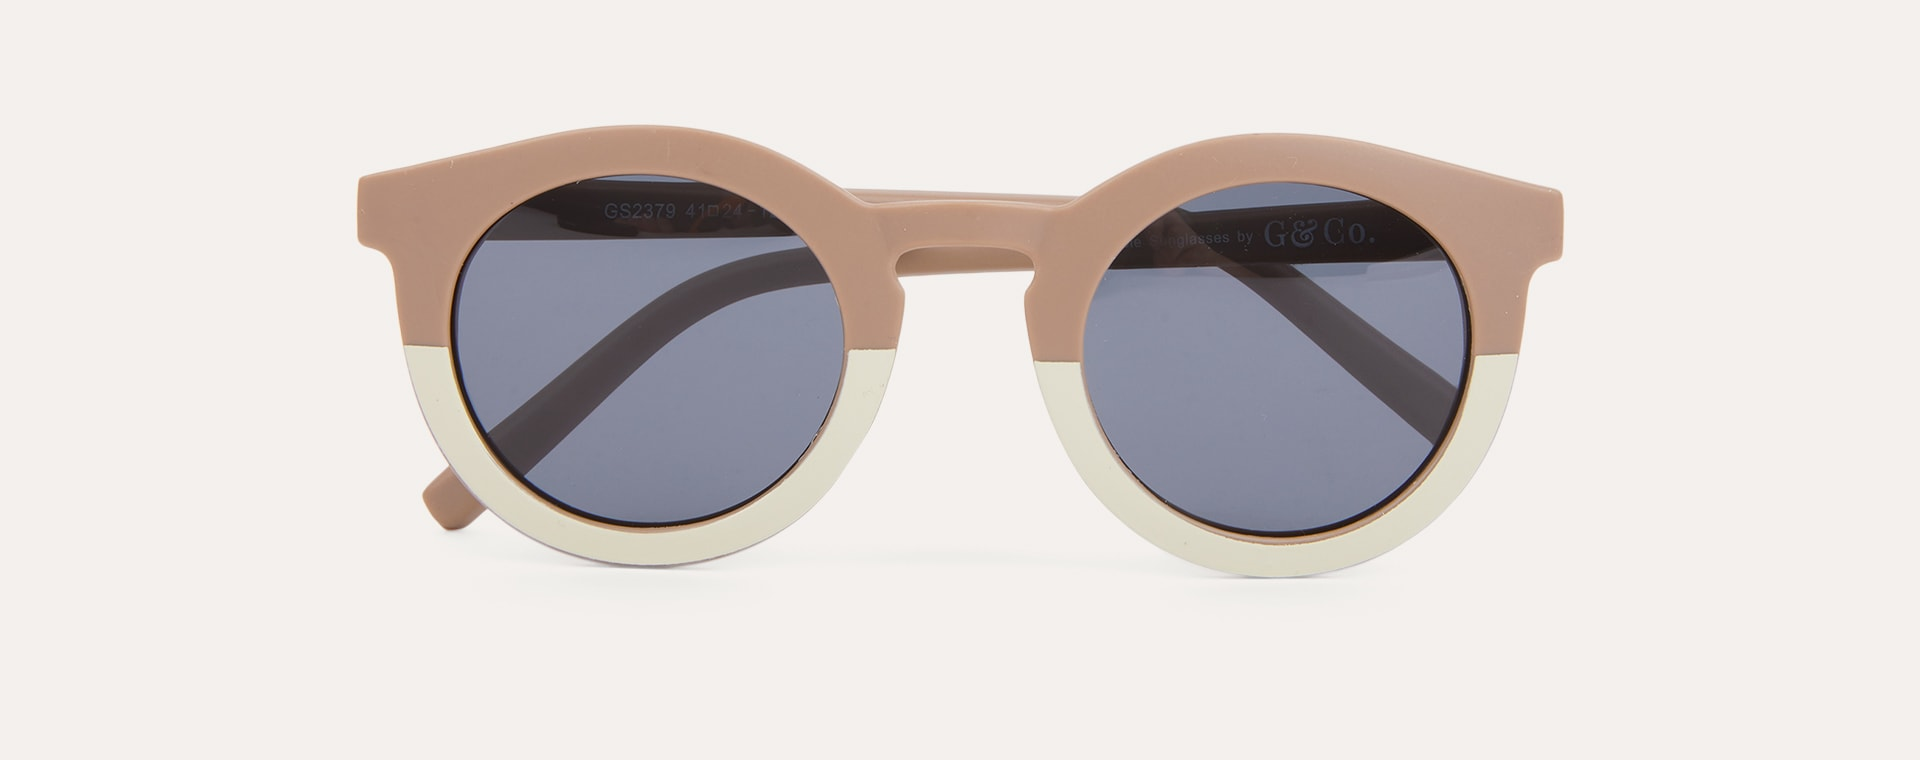 Stone+Buff Grech & Co New Sustainable Sunglasses